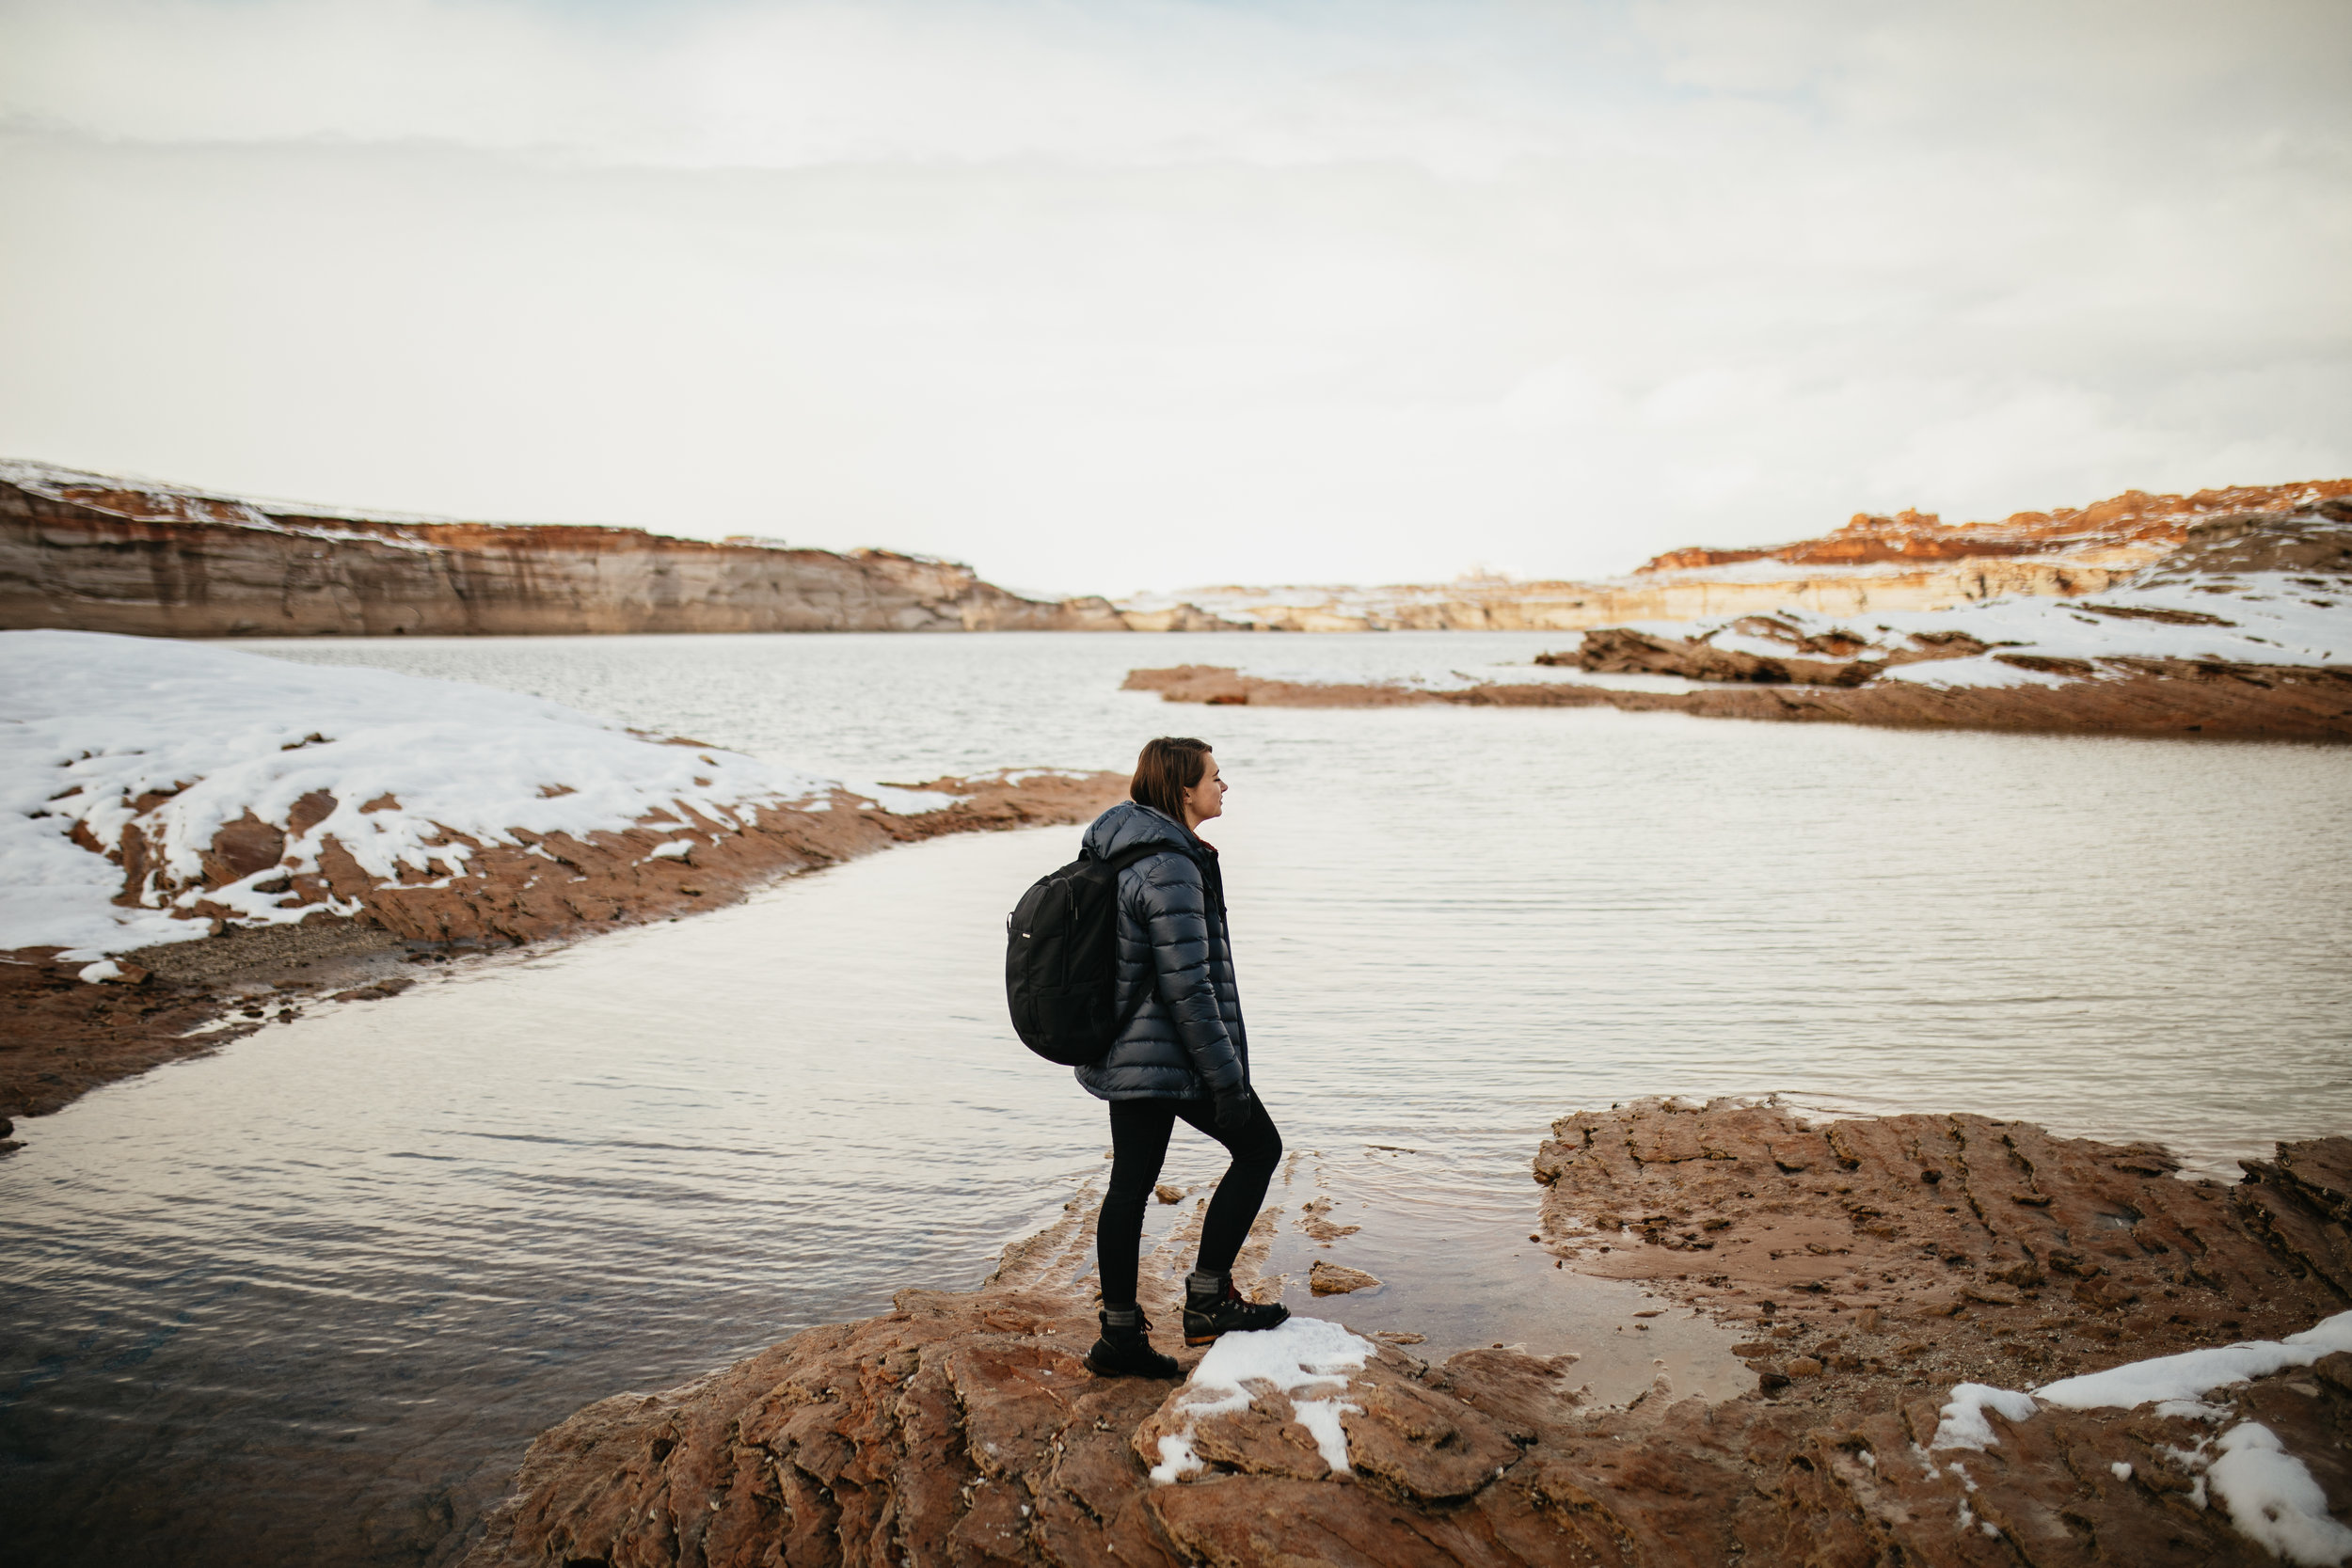 Hiking Lake Powell in winter